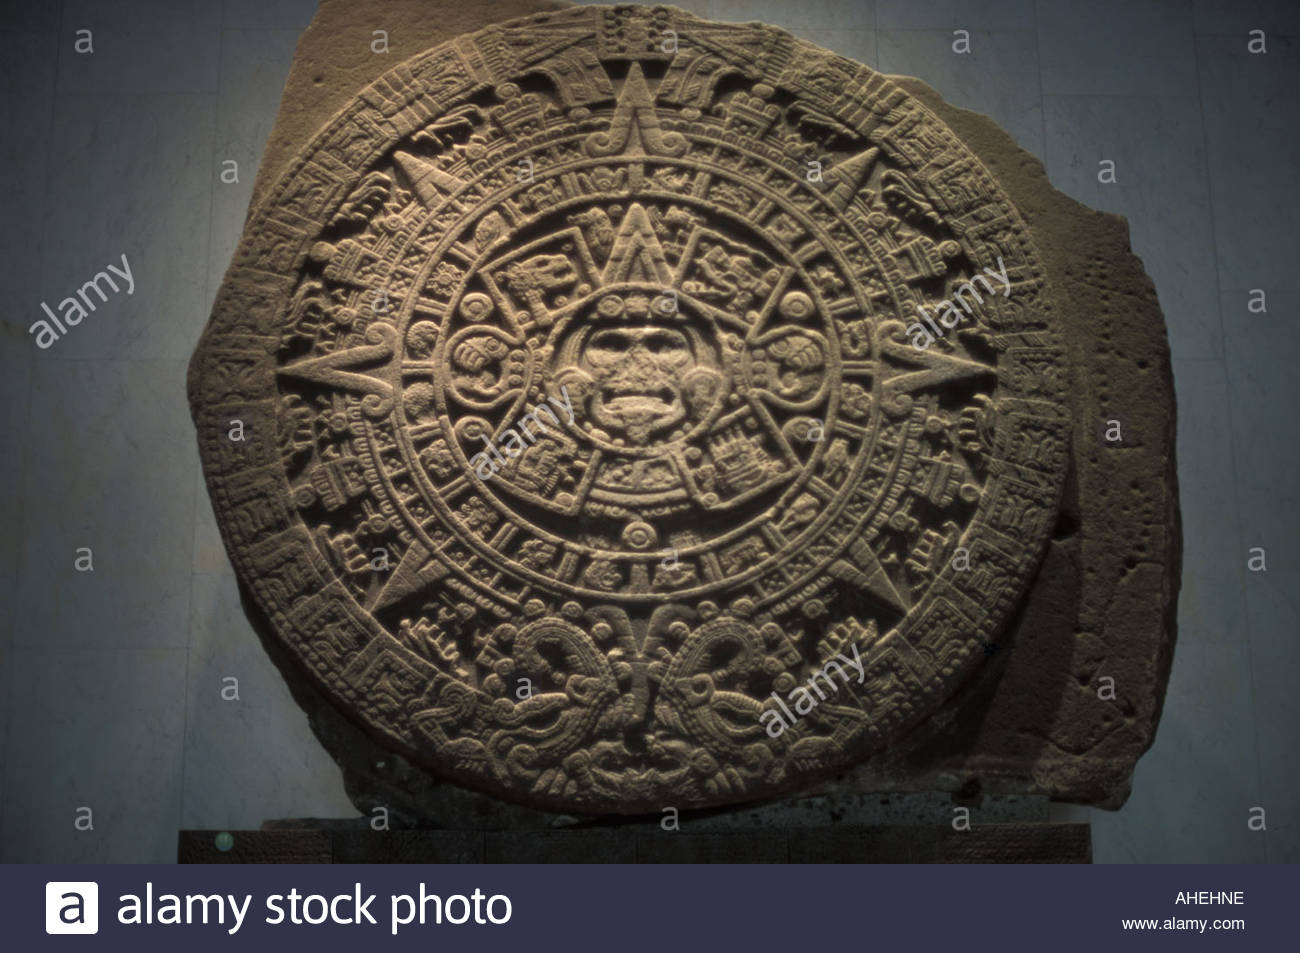 Calender stone face Sun God centre Anthropological Museum Mexico City - Stock Image